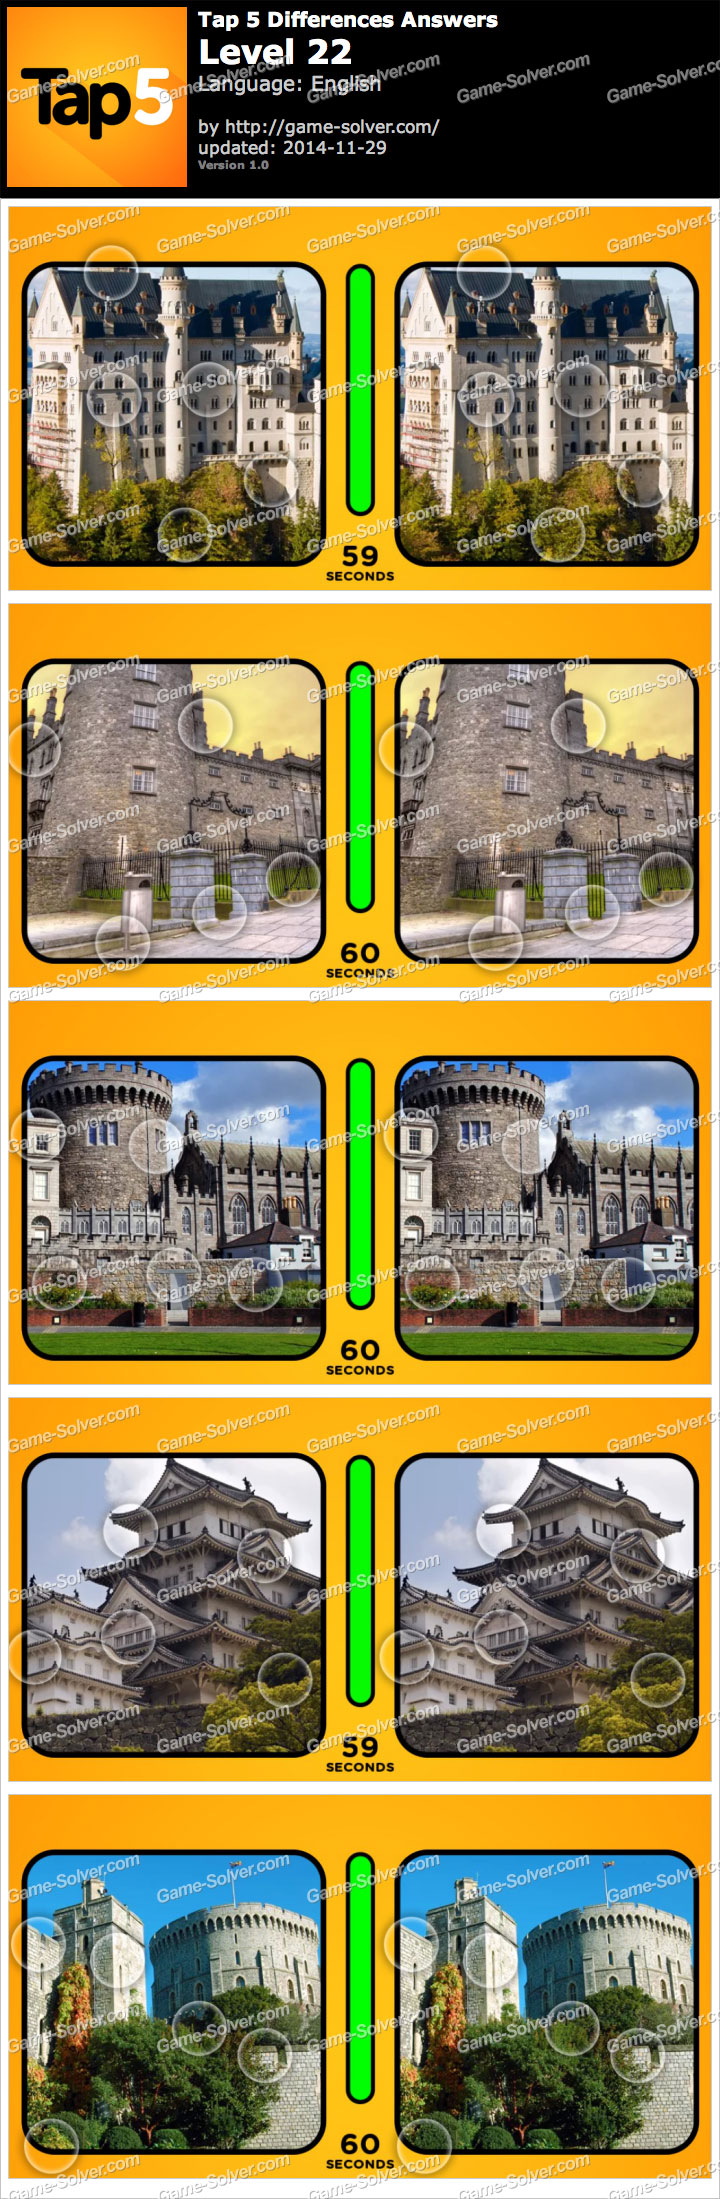 Tap 5 Differences Level 22